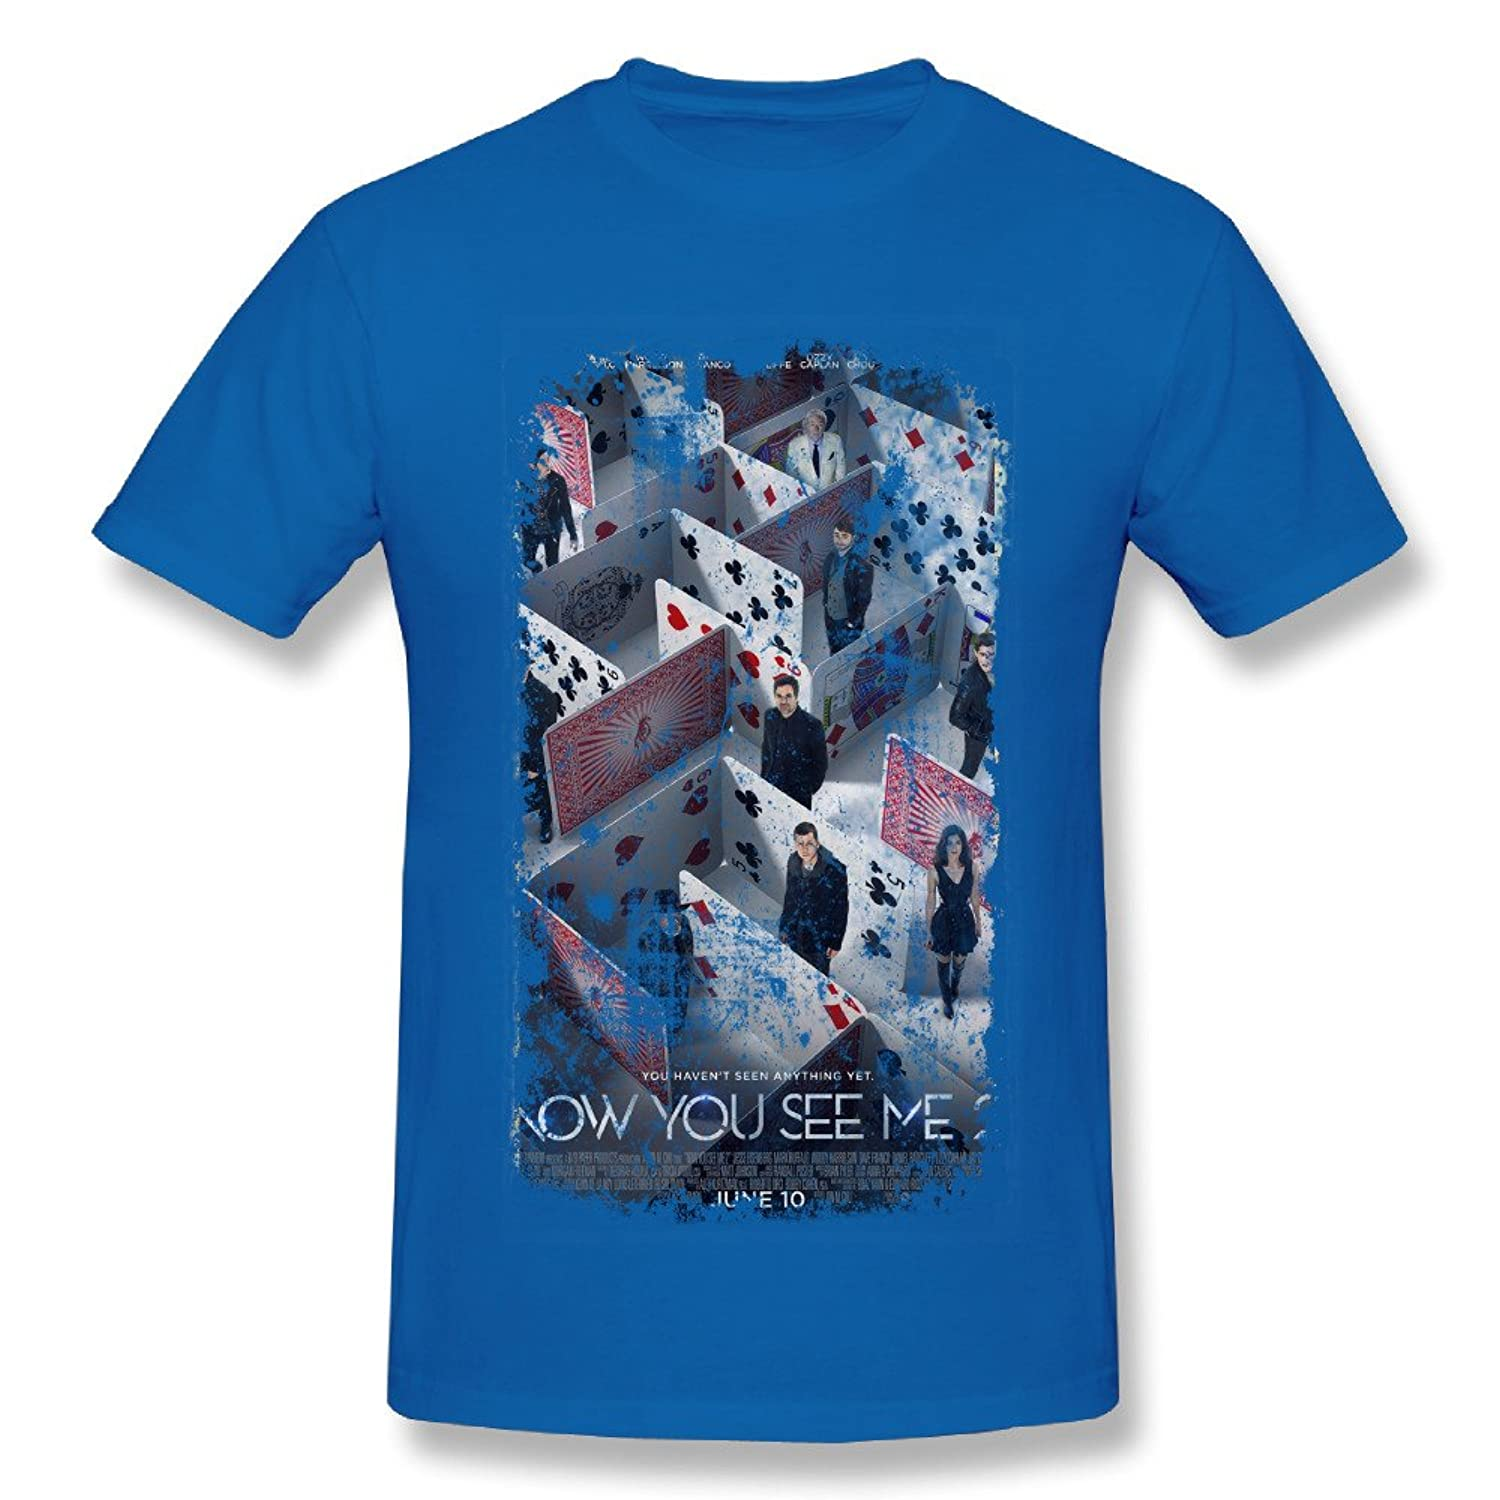 Classic-Men's Now You See Me 2 Movie Short-sleeve Shirt.